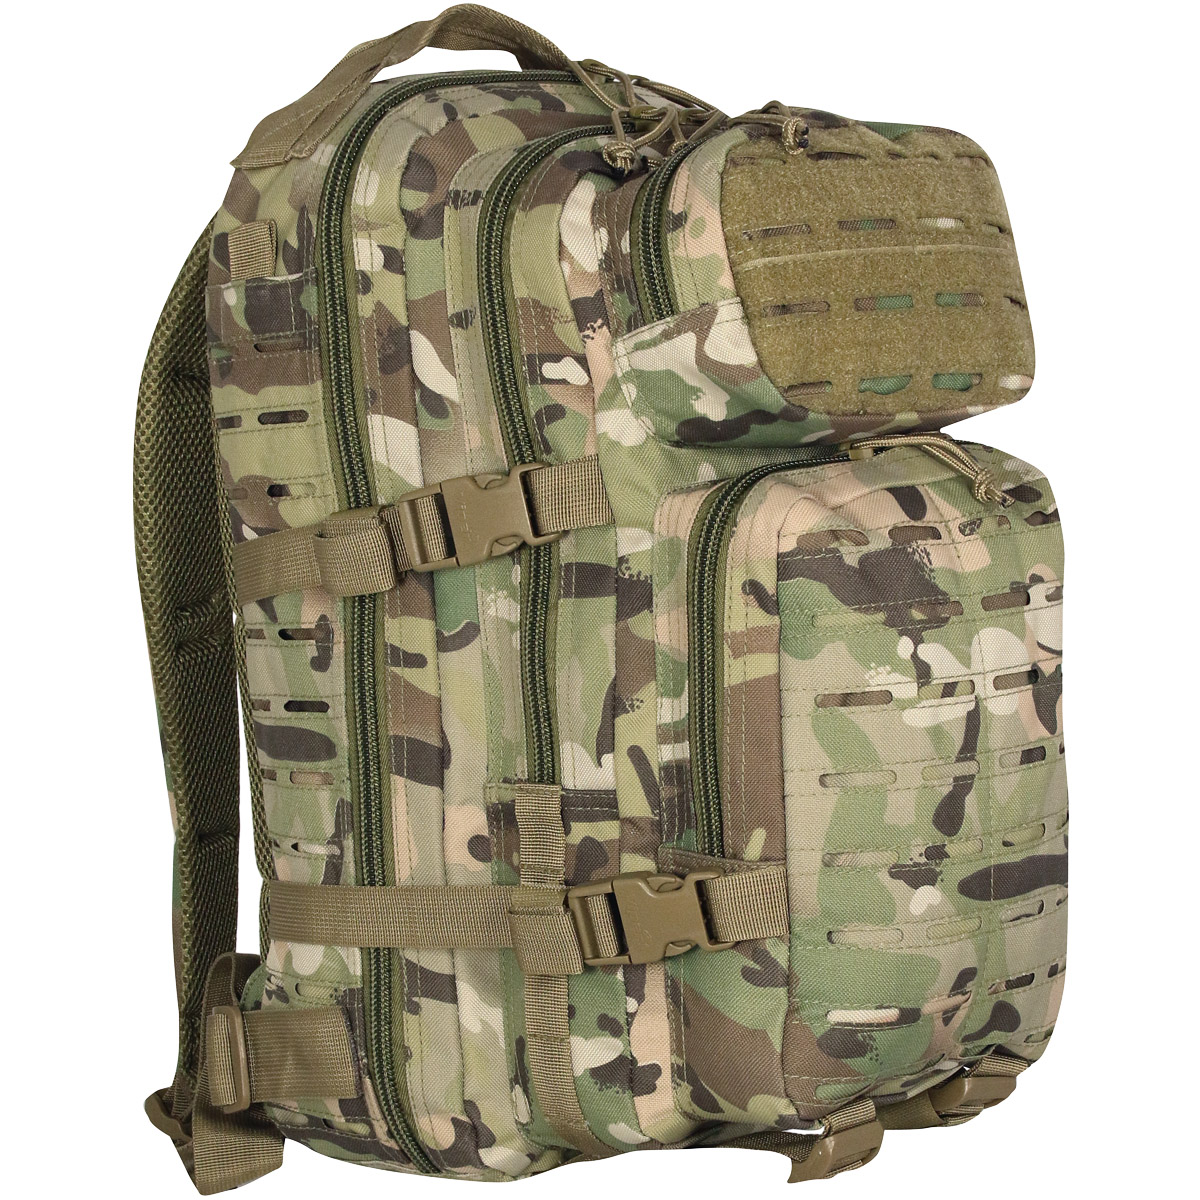 viper lazer recon pack 35l military backpack hydration molle